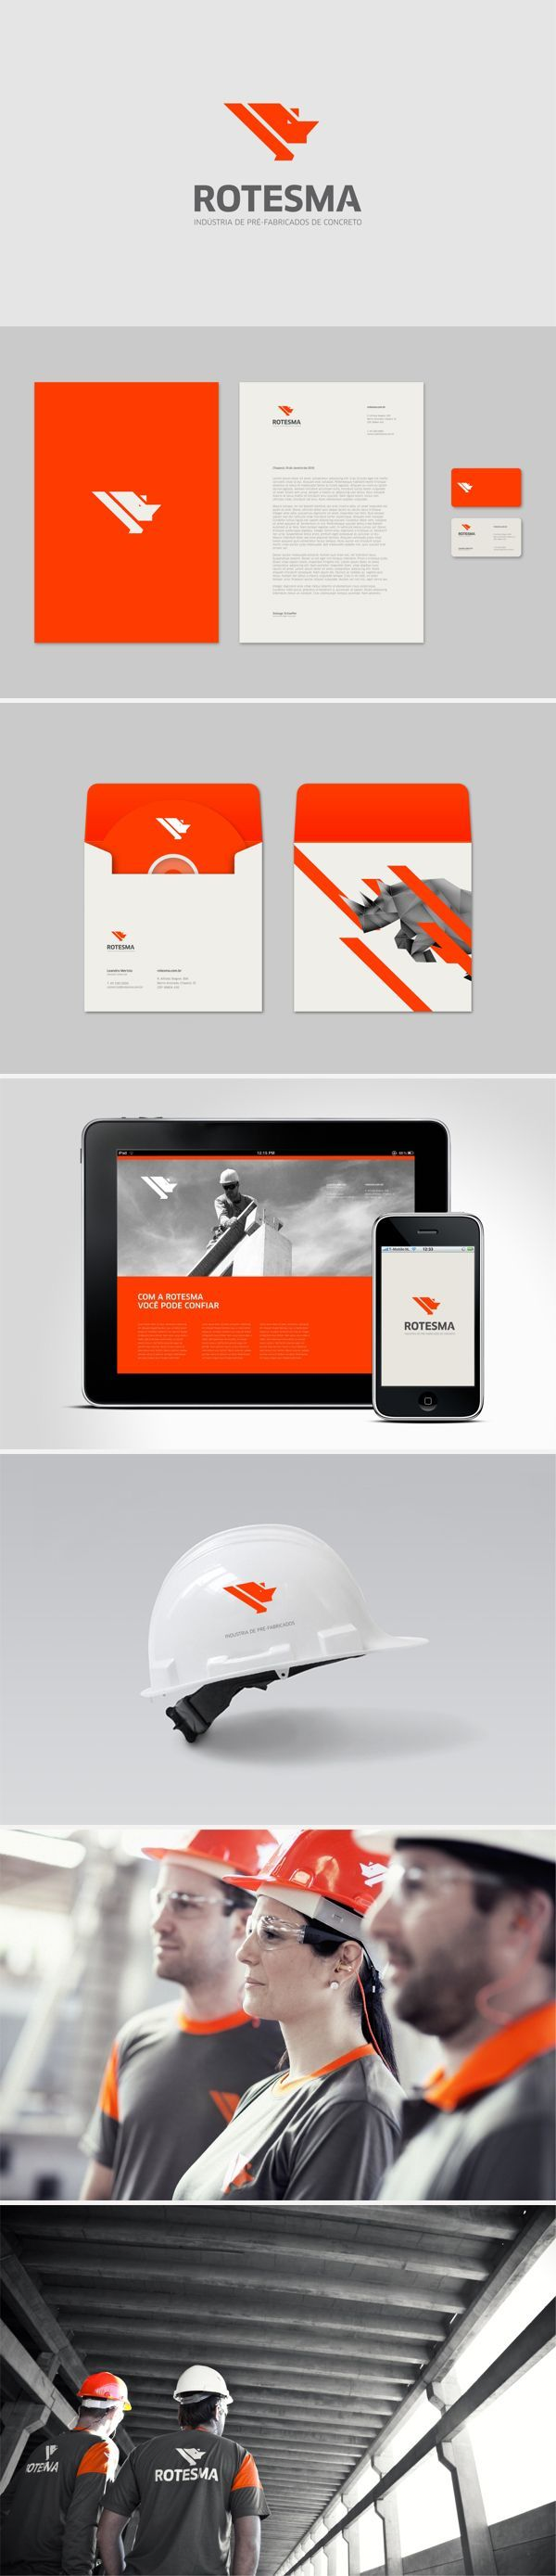 identity / Rotesma construction. If you like UX, design, or design thinking, check out theuxblog.com